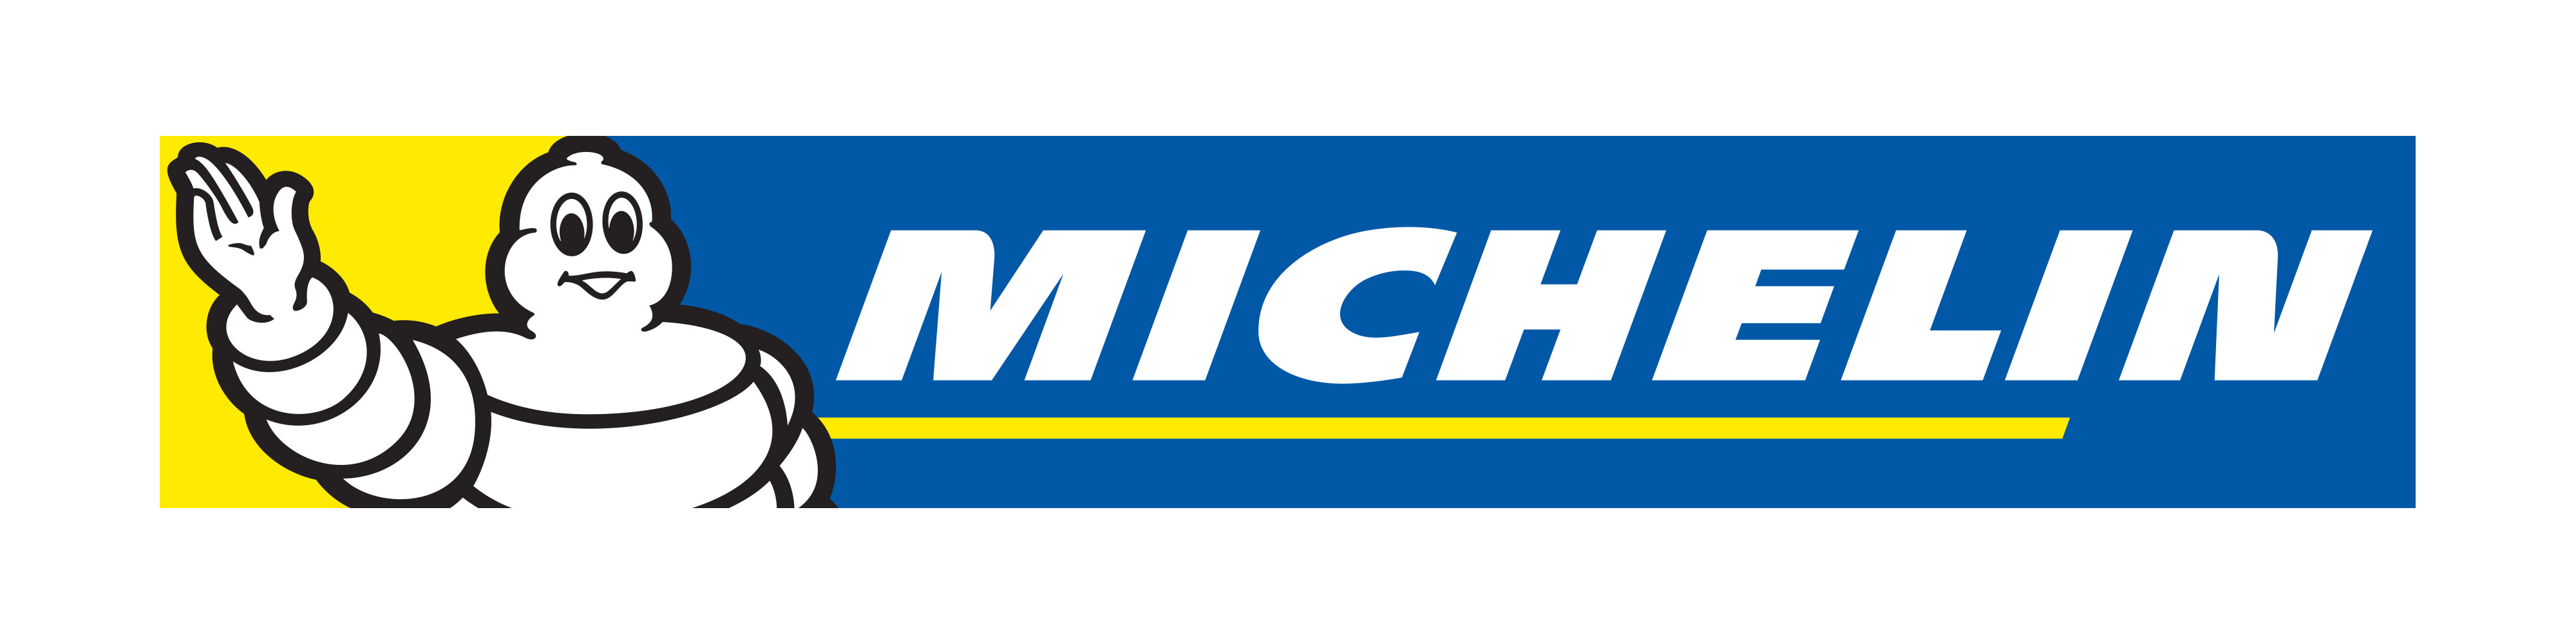 Michelin Tires Logo PNG - 103655